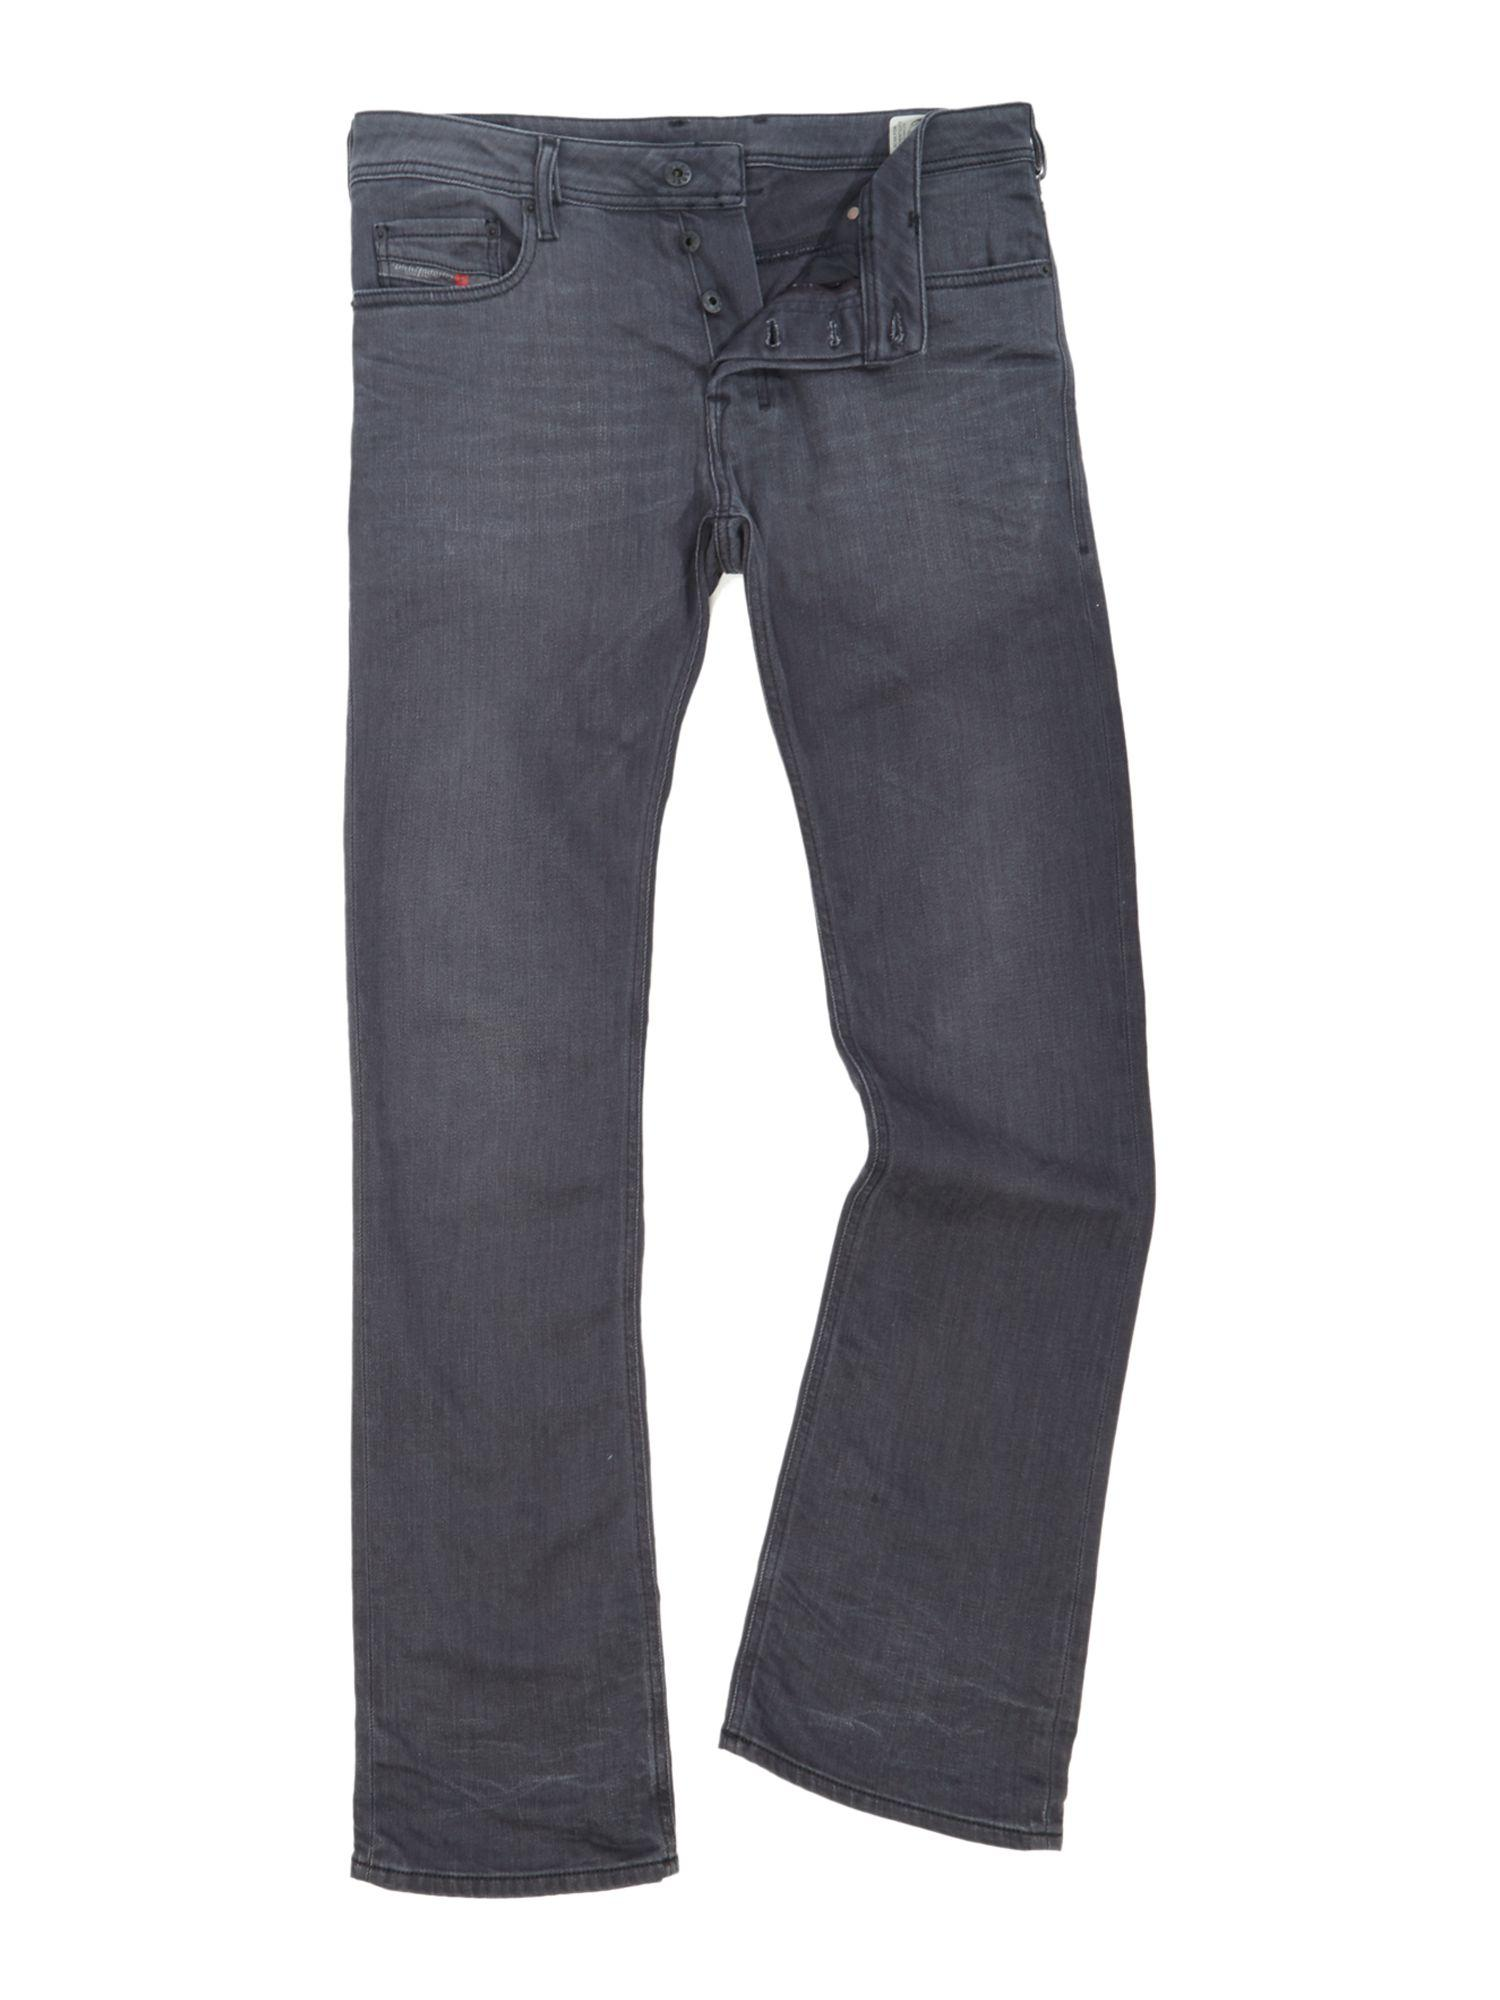 Bootcut Jeans for Guys. We are % digging Hollister's boot cut jeans for men this season. This relaxed fit with classic boot hem is a must-have in every guy's wardrobe.